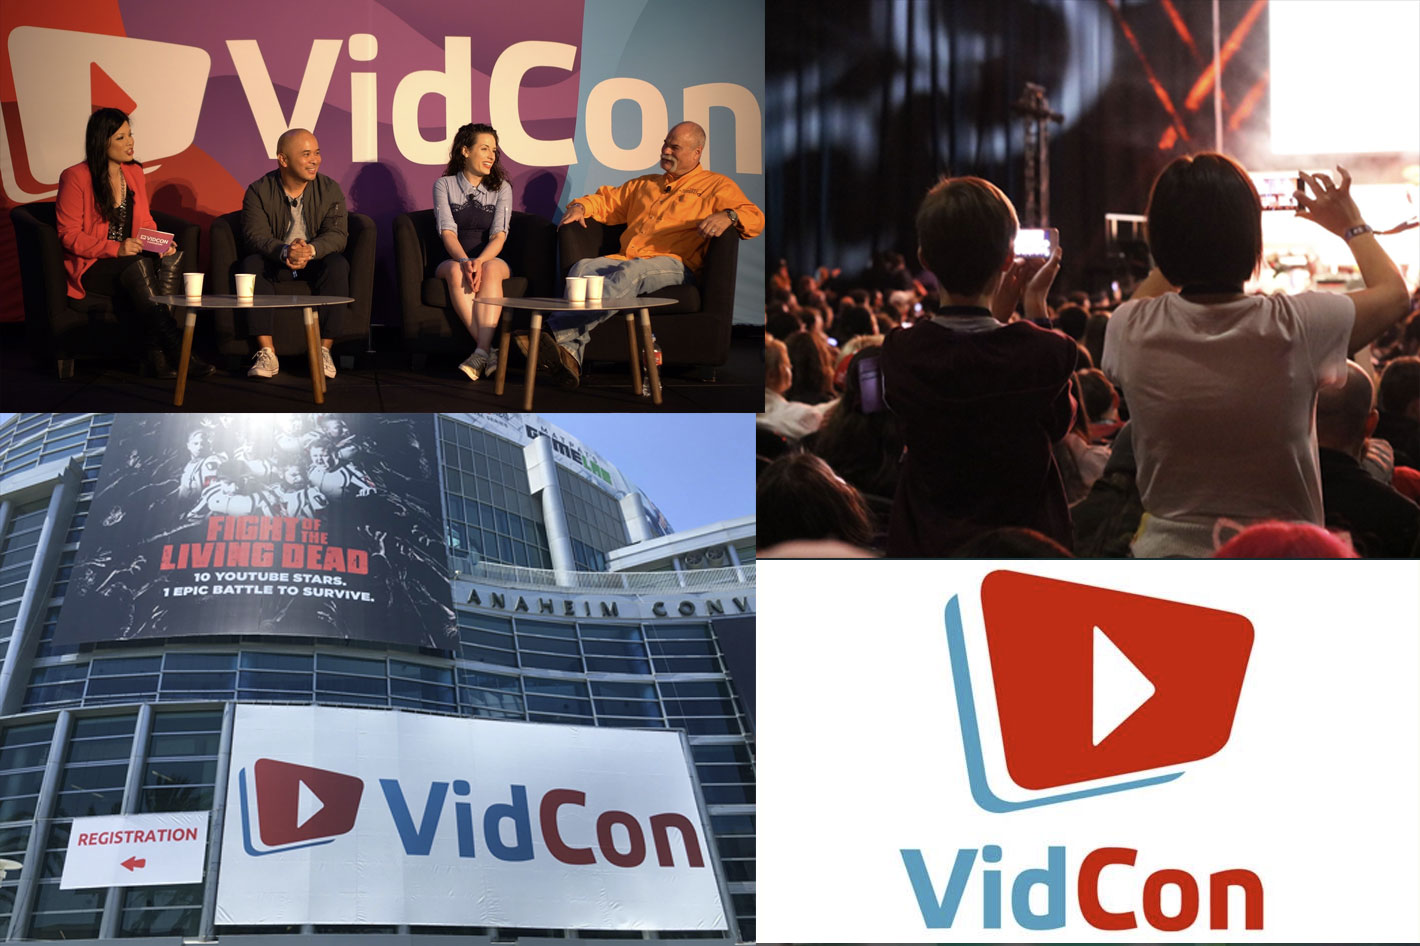 VidCon US conference canceled due to COVID-19